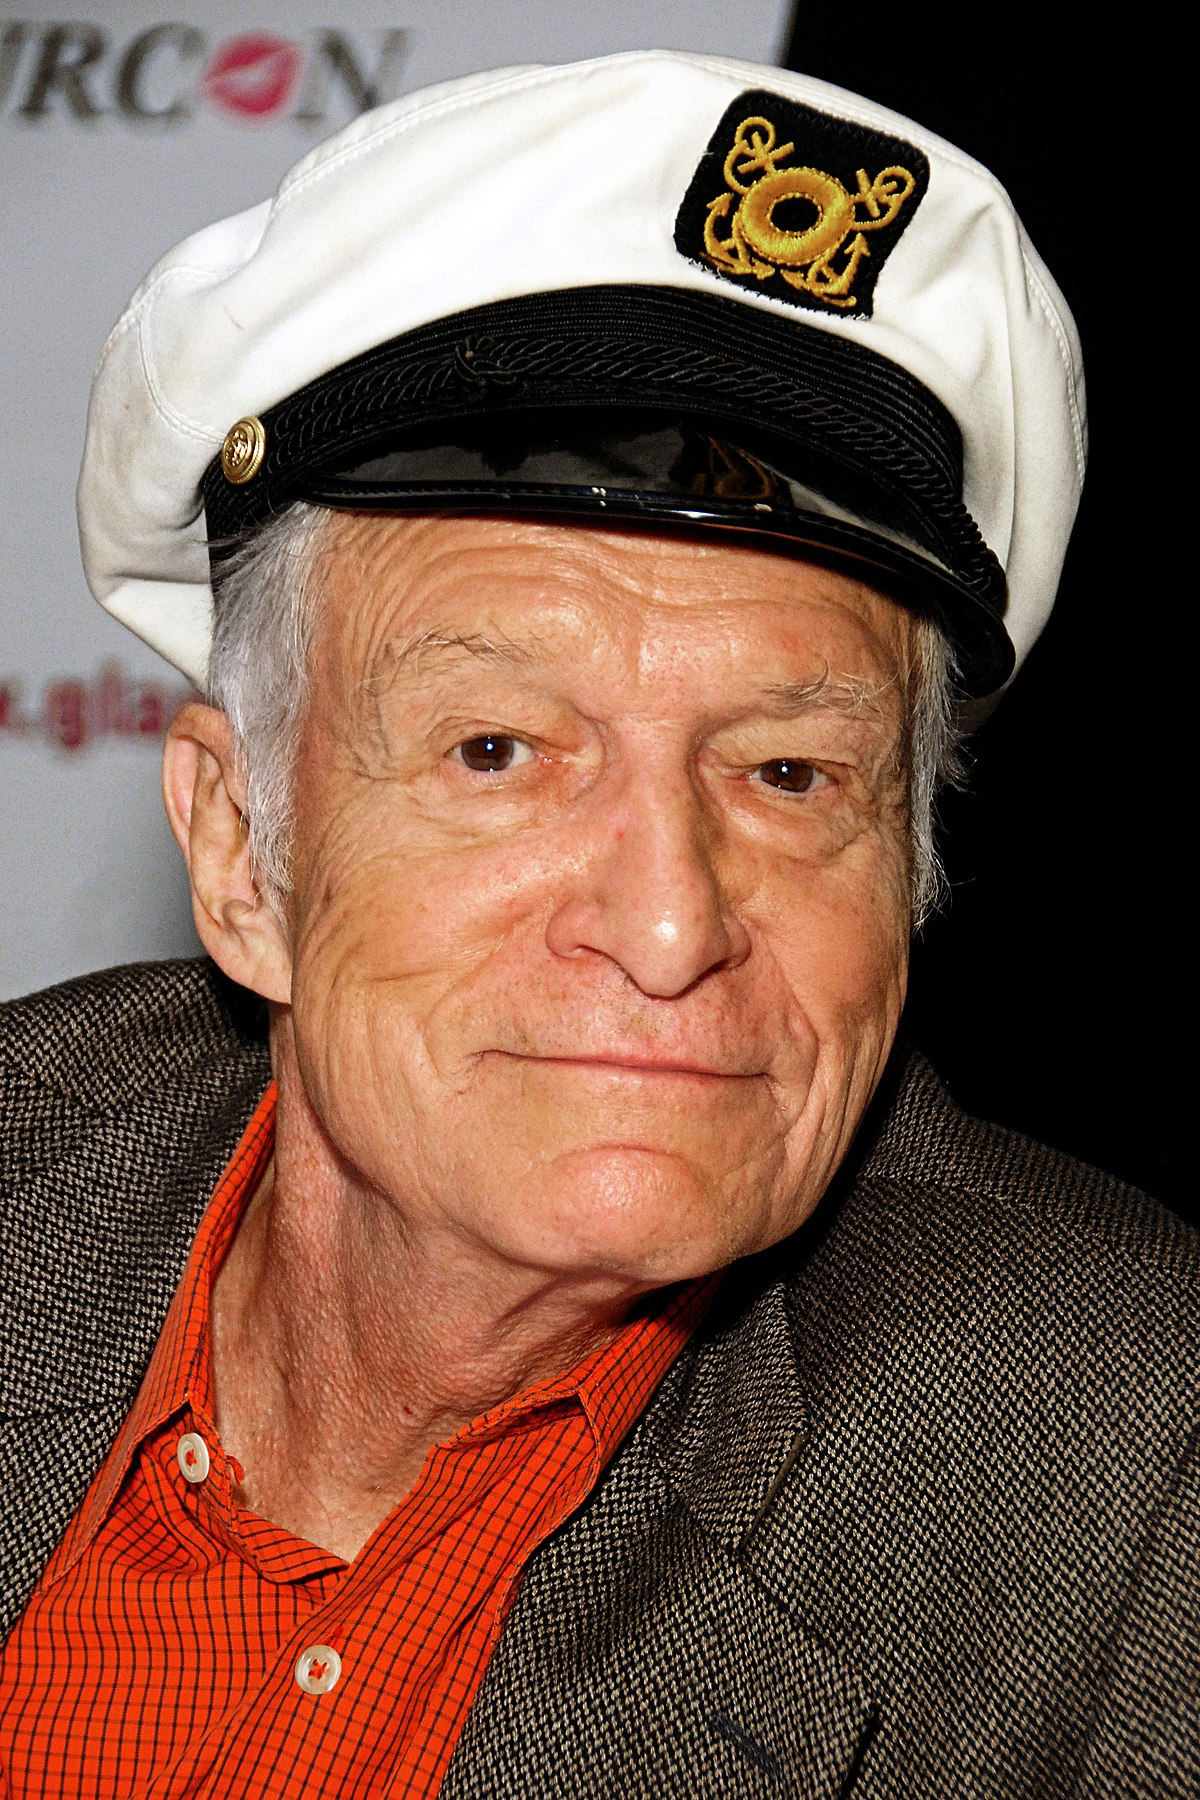 William Heffner hugh hefner - wikipedia